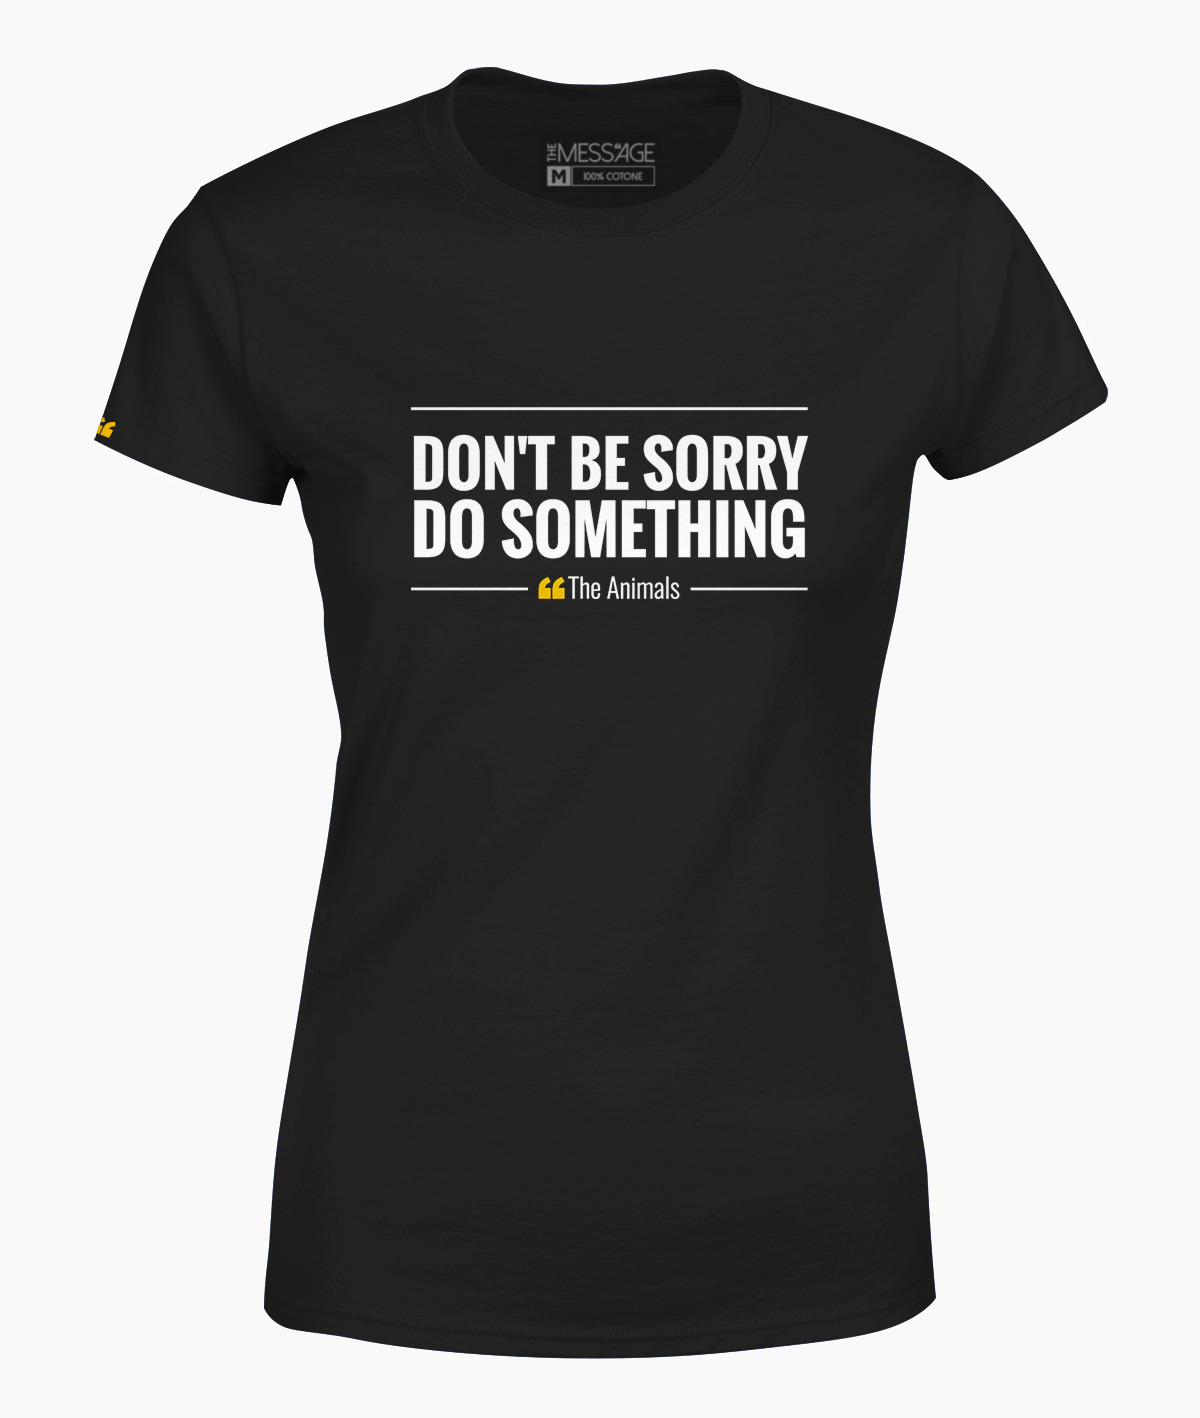 Don't be sorry. Do something – The Animals T-Shirt